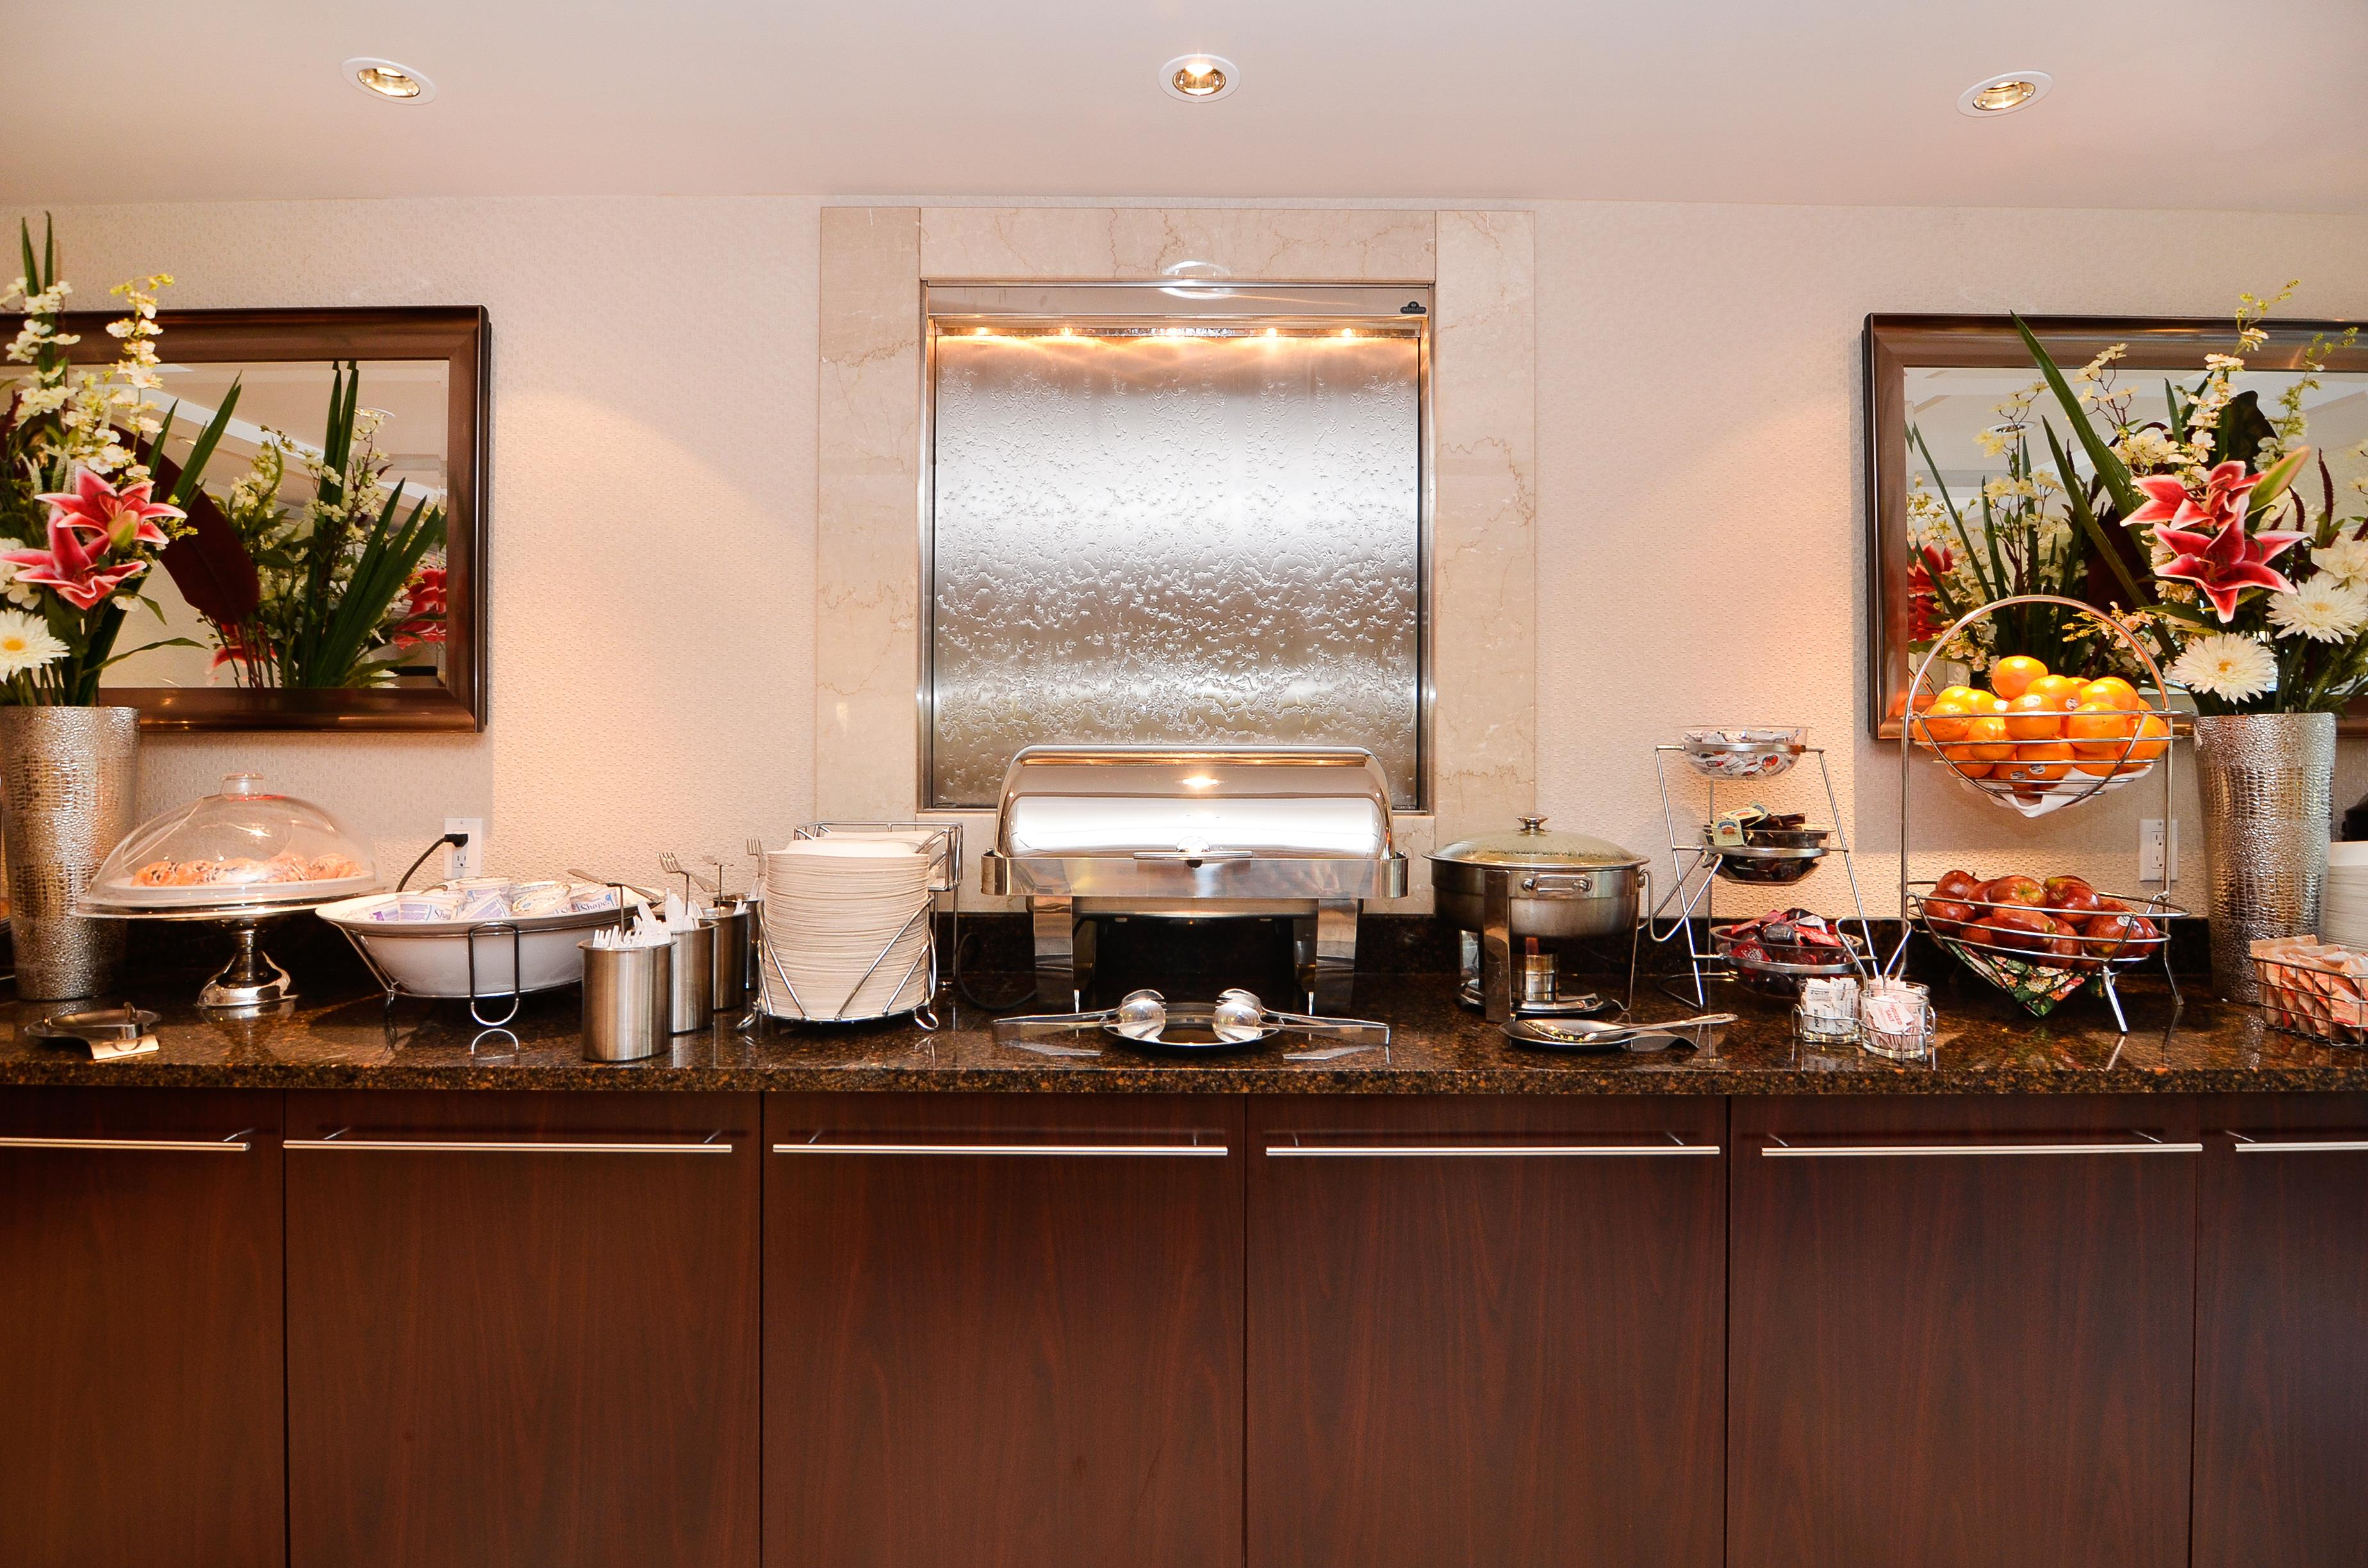 Best Western Plus Regency Inn & Conference Centre in Abbotsford: Breakfast Area